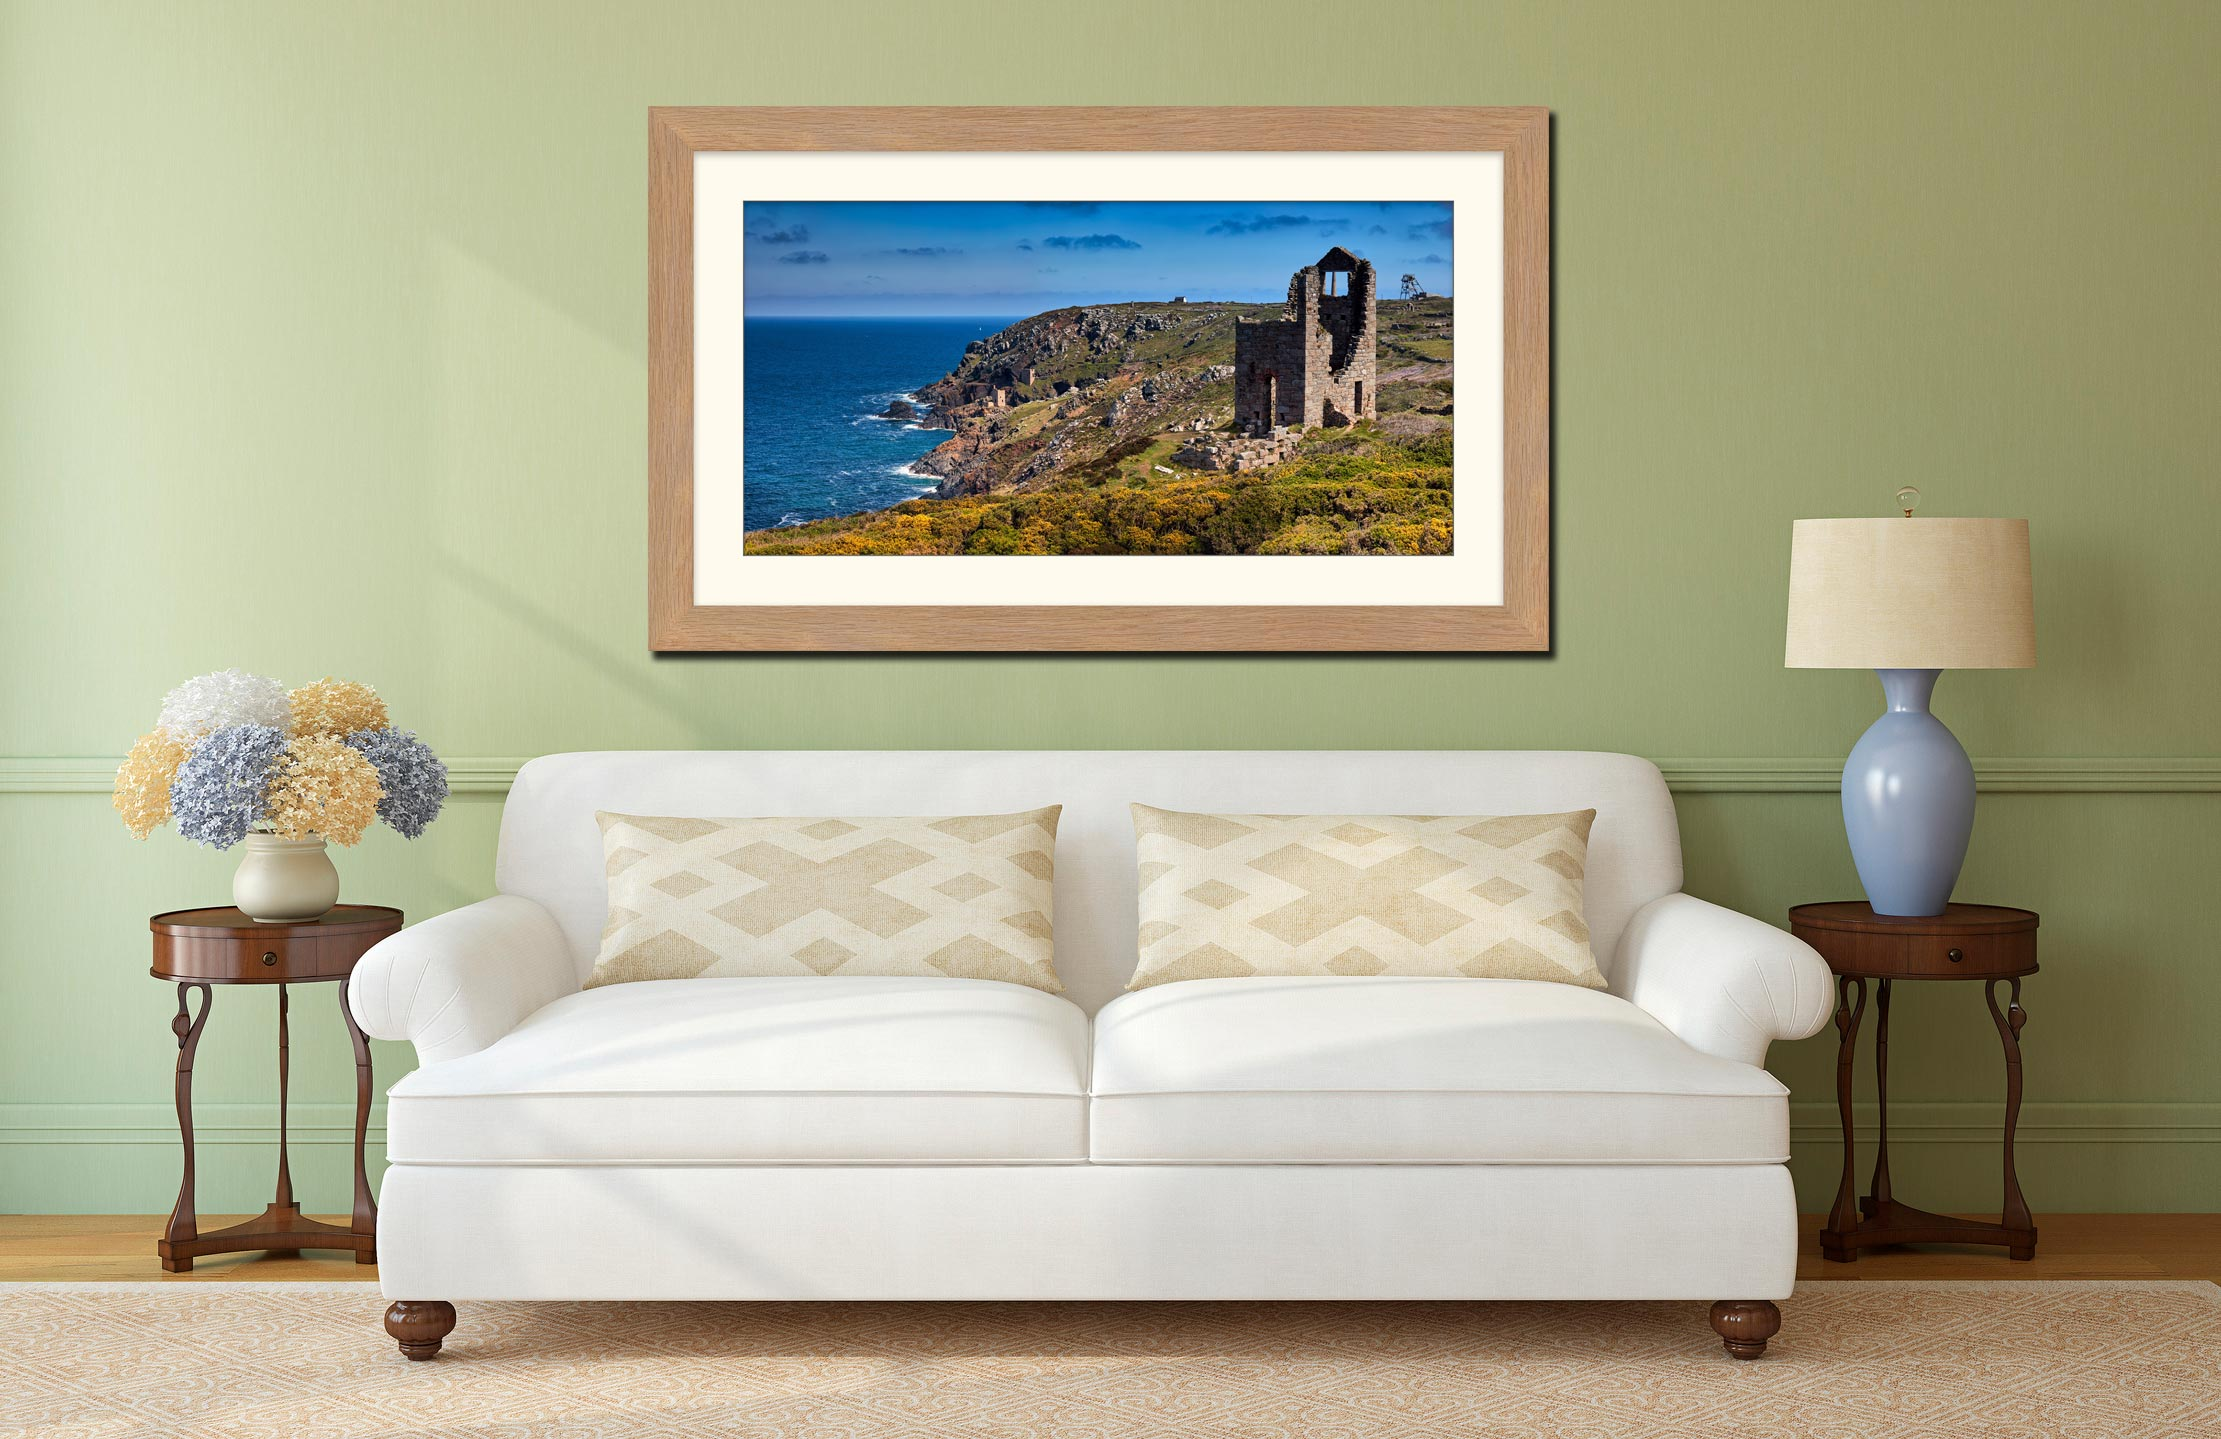 Mining Coast of Botallack - Framed Print with Mount on Wall